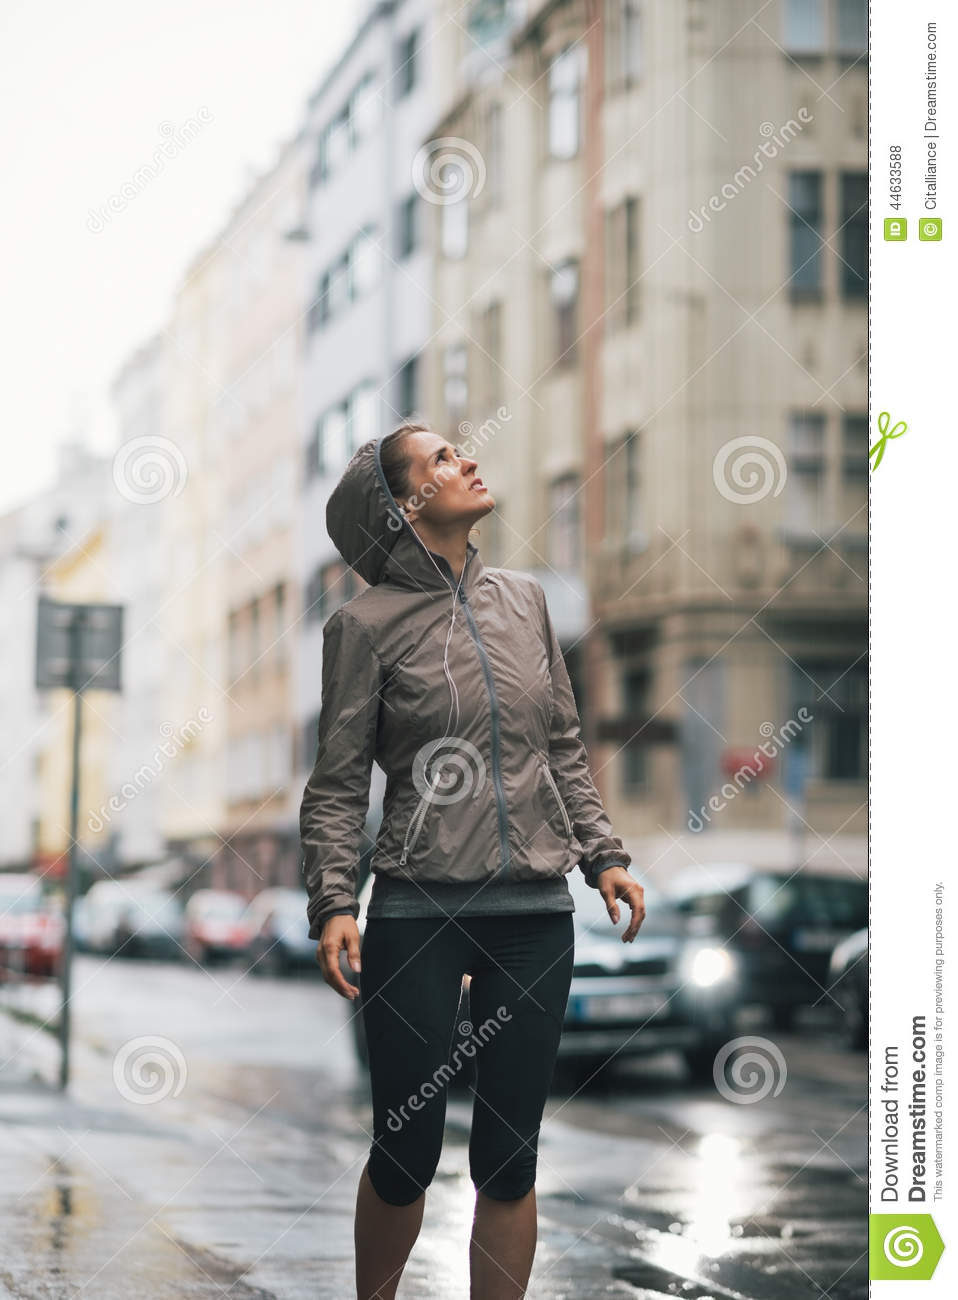 Fitness woman exposed to rain while jogging